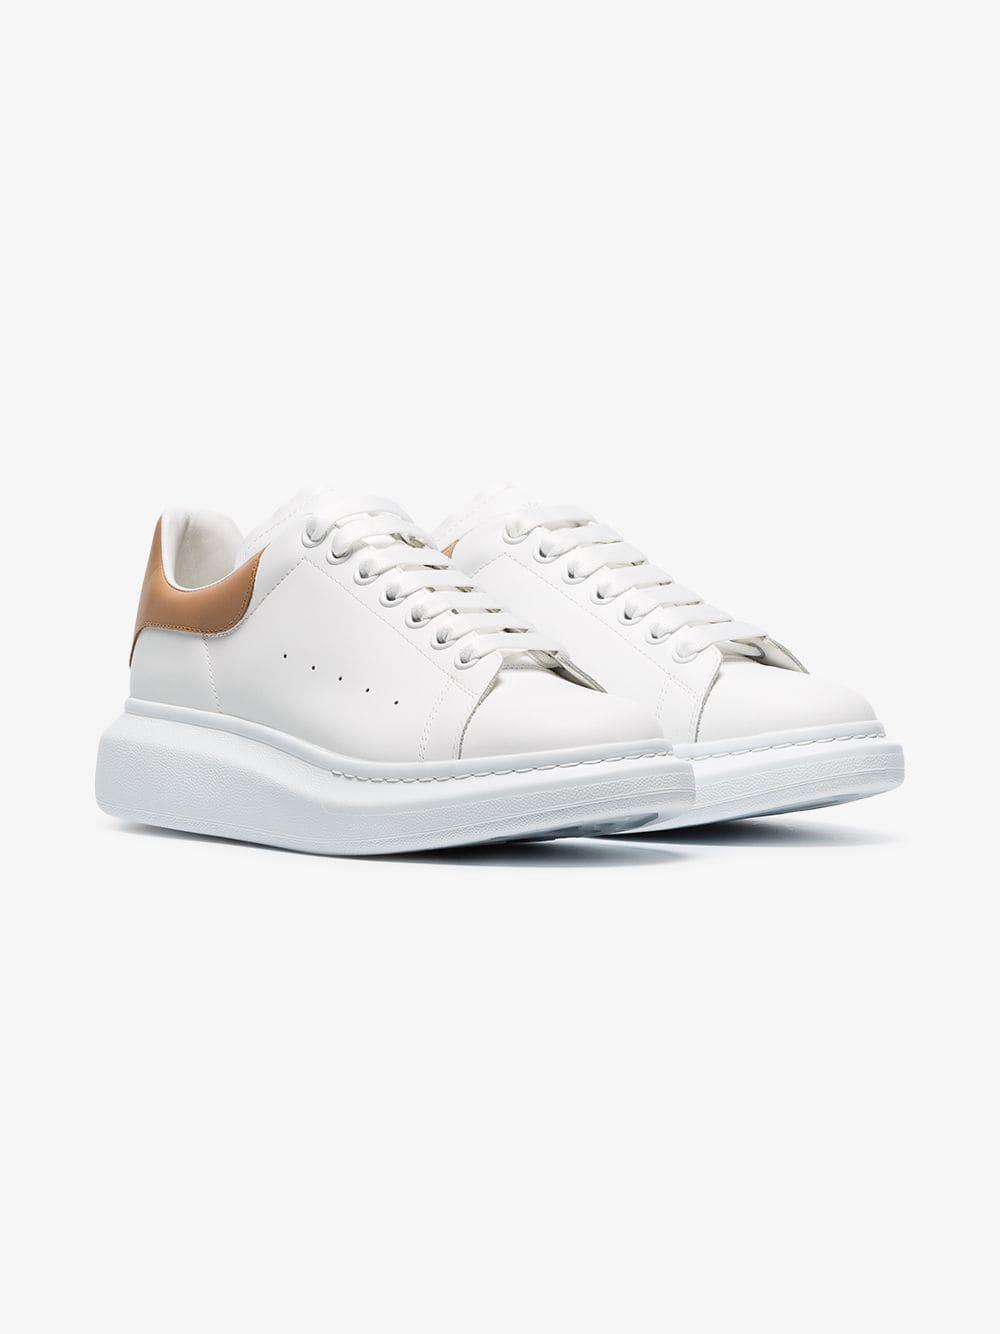 4593b6454c87 Alexander McQueen. Men s White Cappuccino Detail Chunky Leather Sneakers